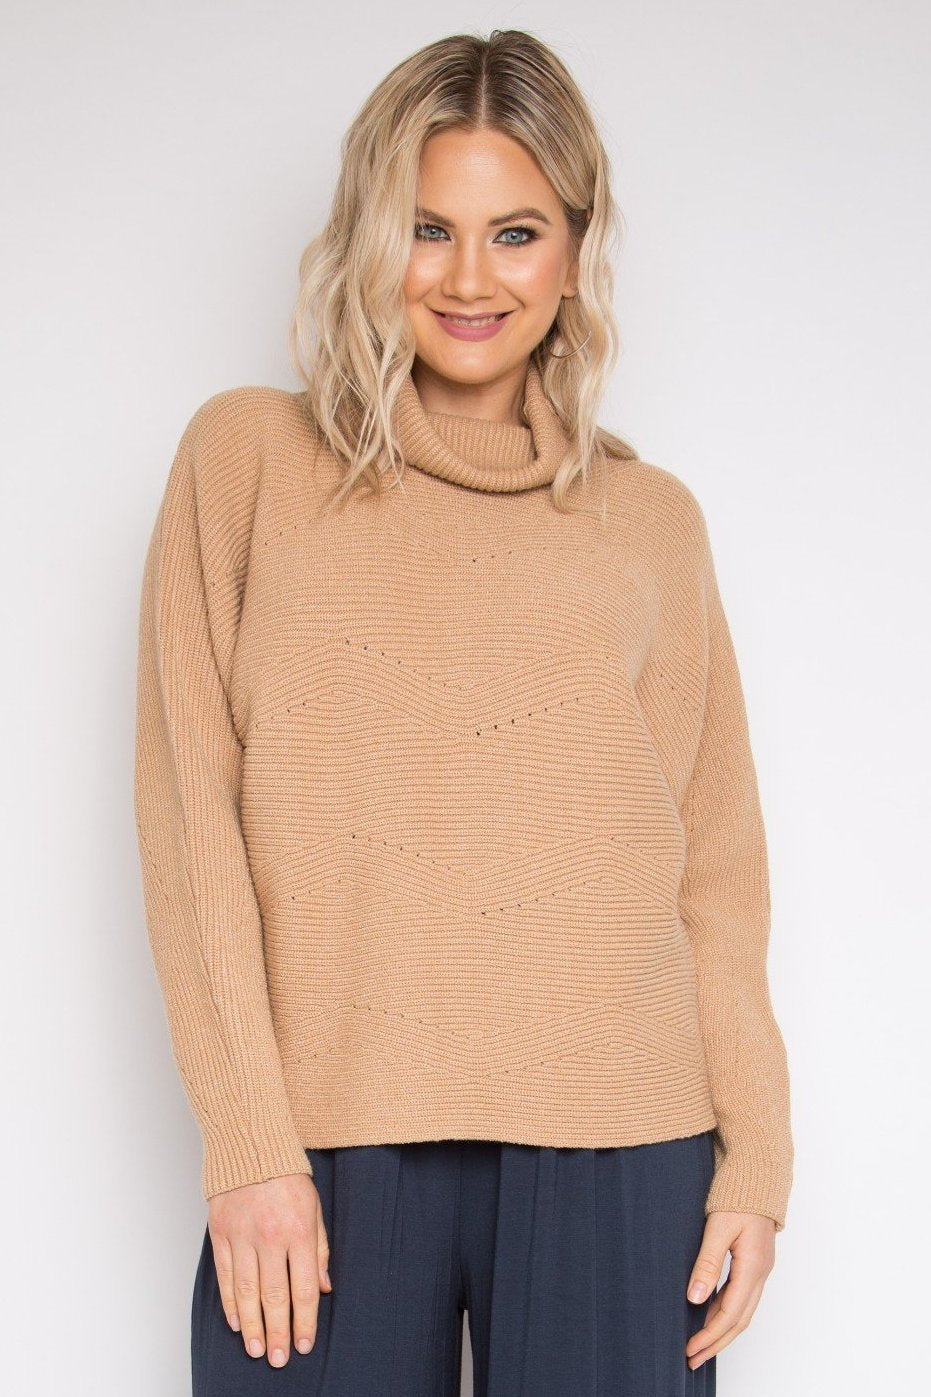 Cosy Knit Top in Caramel